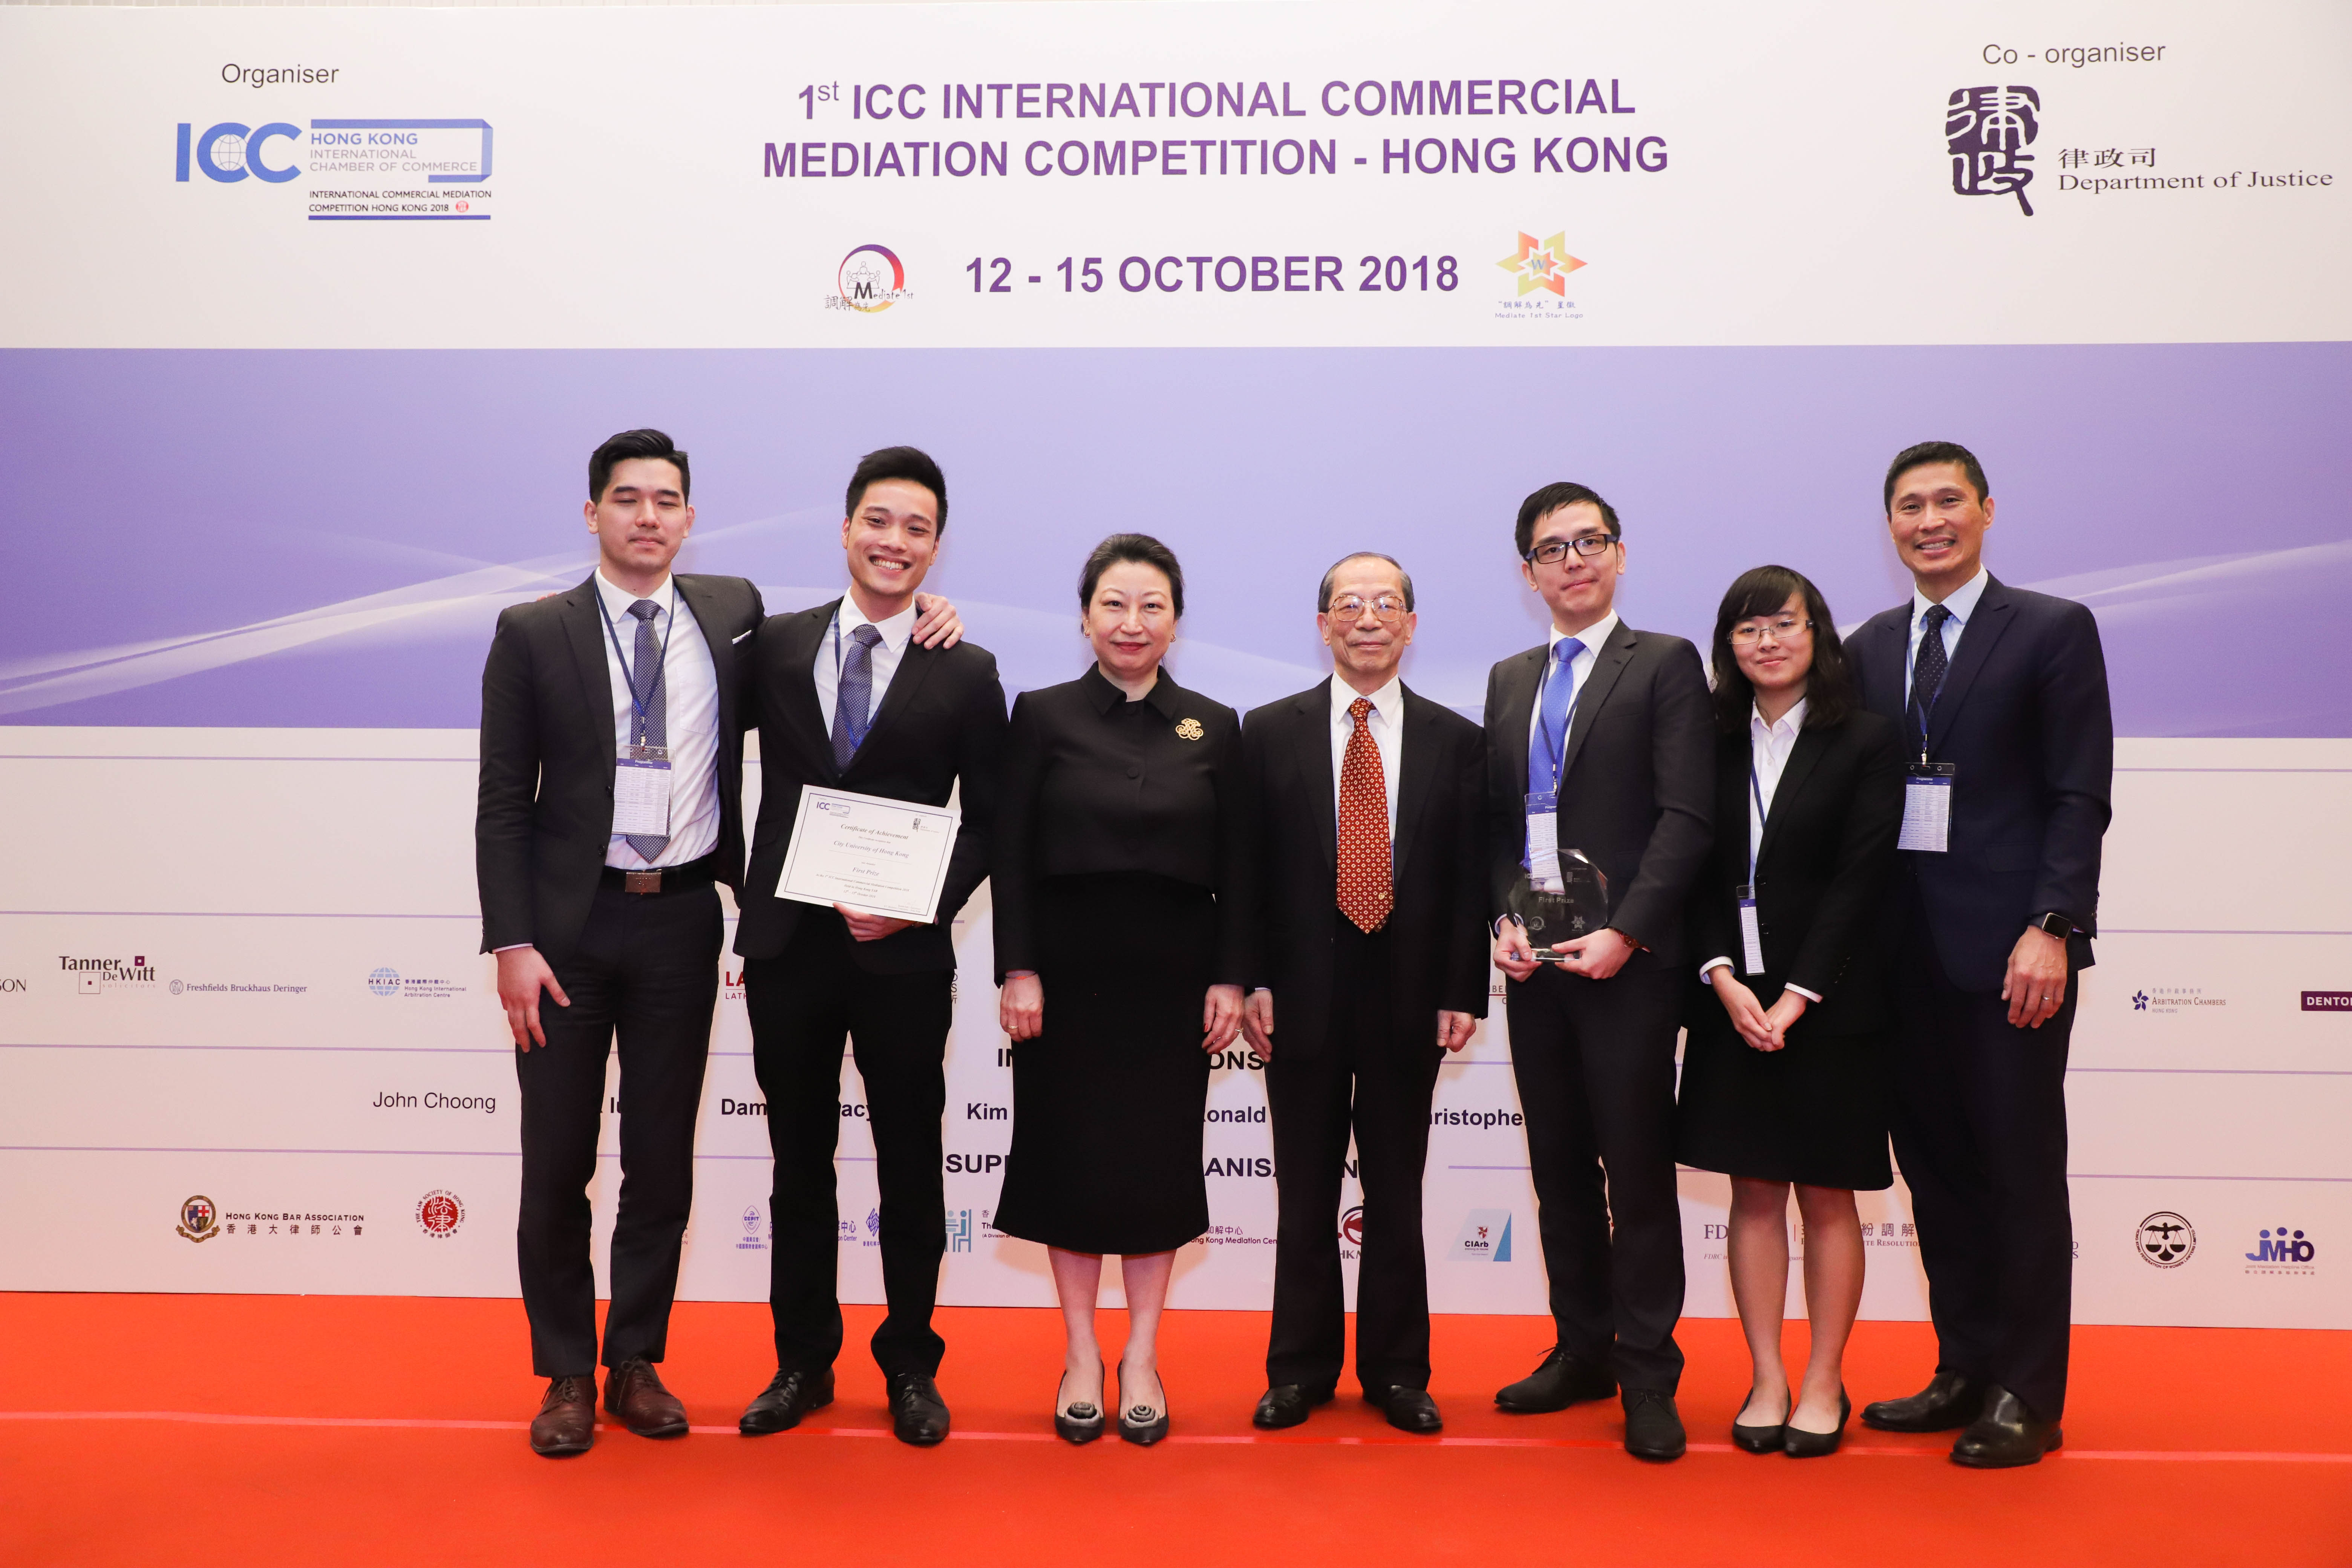 Winners of ICC Mediation Competition - HK